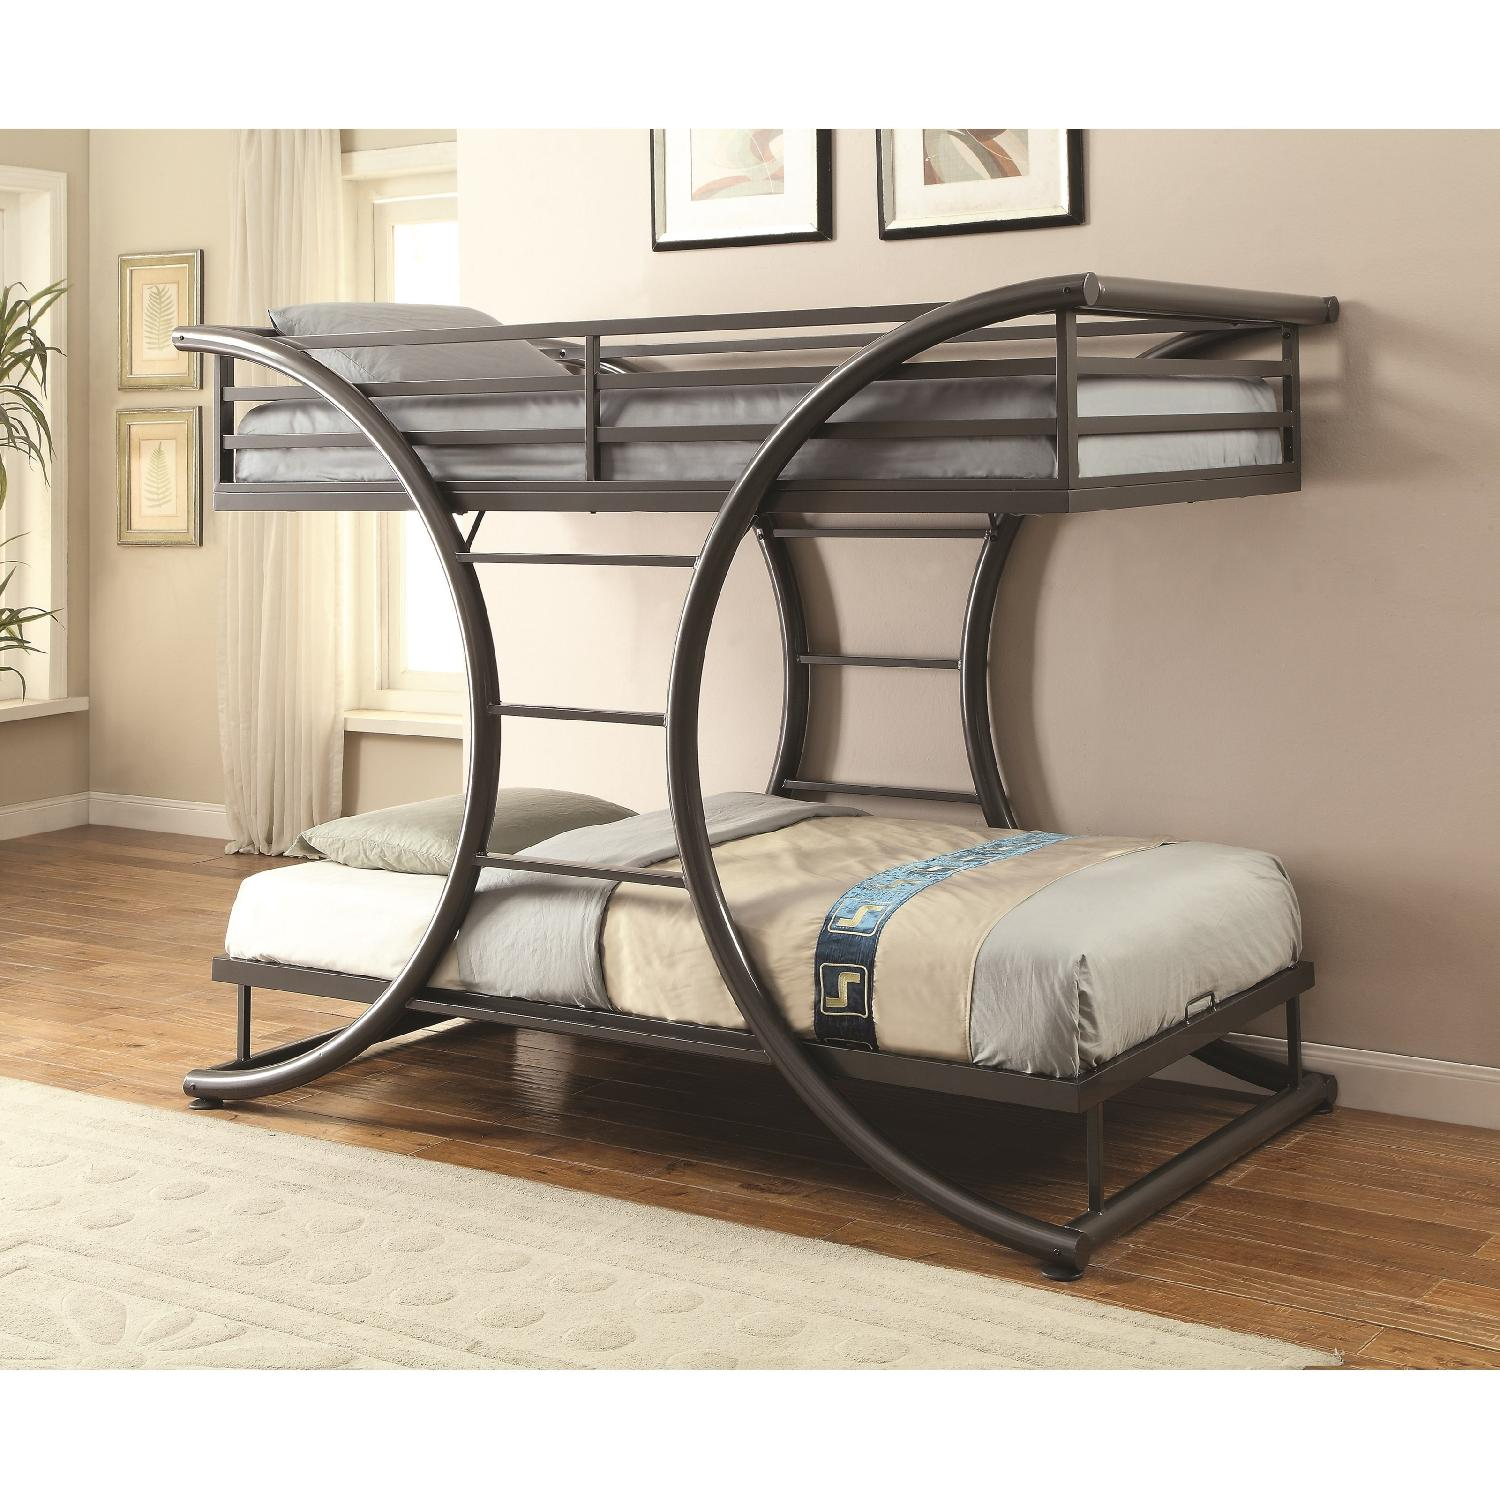 Twin Over Twin Steel Bunk Bed Finished in Gunmetal - image-1